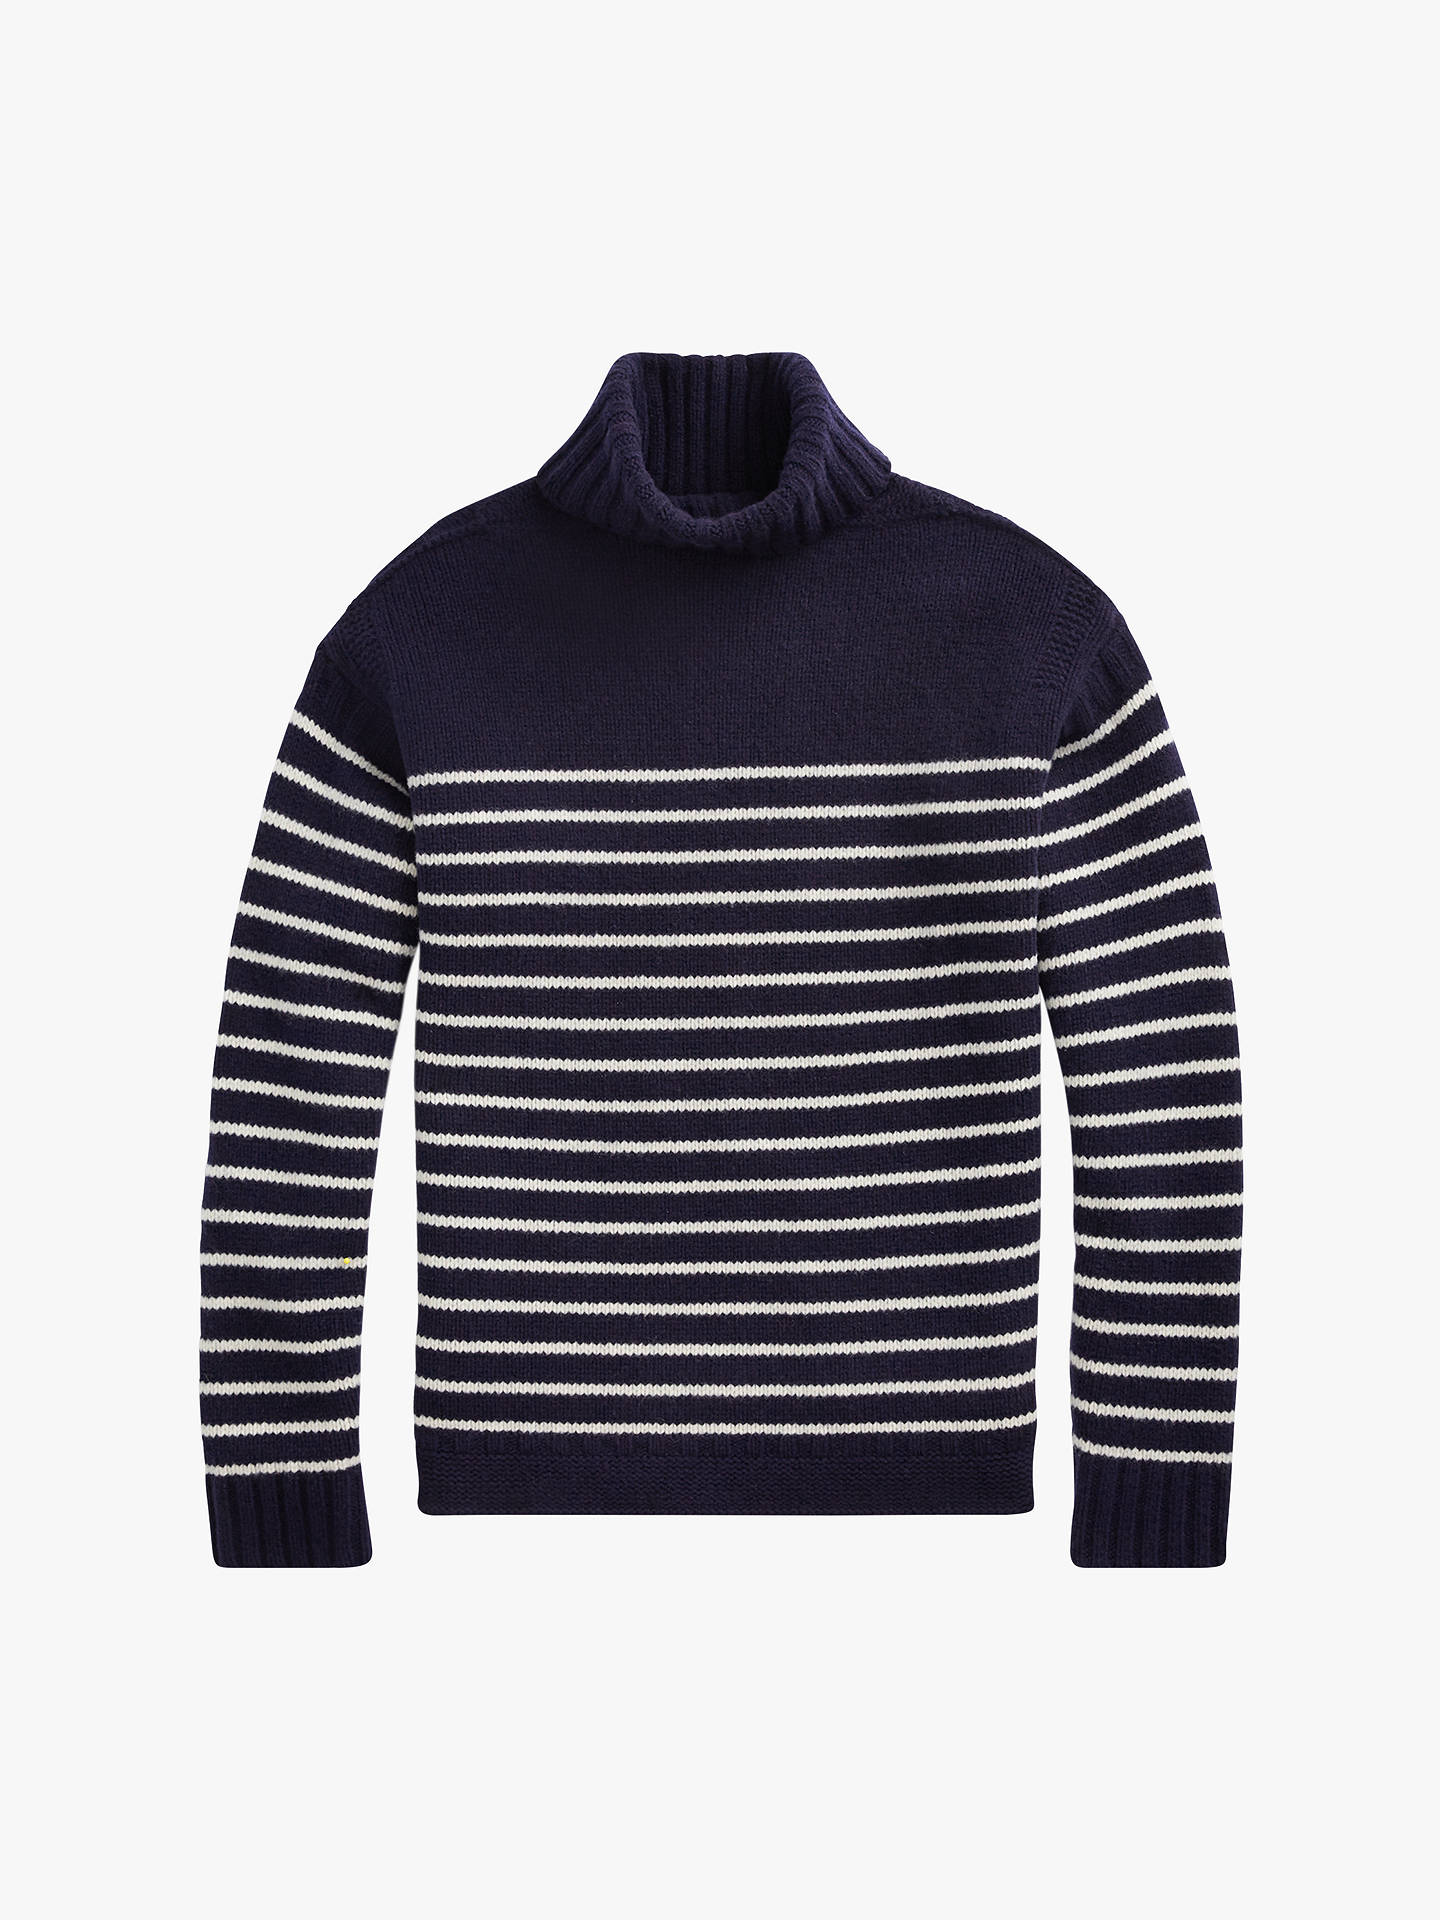 BuyPolo Ralph Lauren Striped Roll Neck Jumper, Navy/Cream, S Online at johnlewis.com